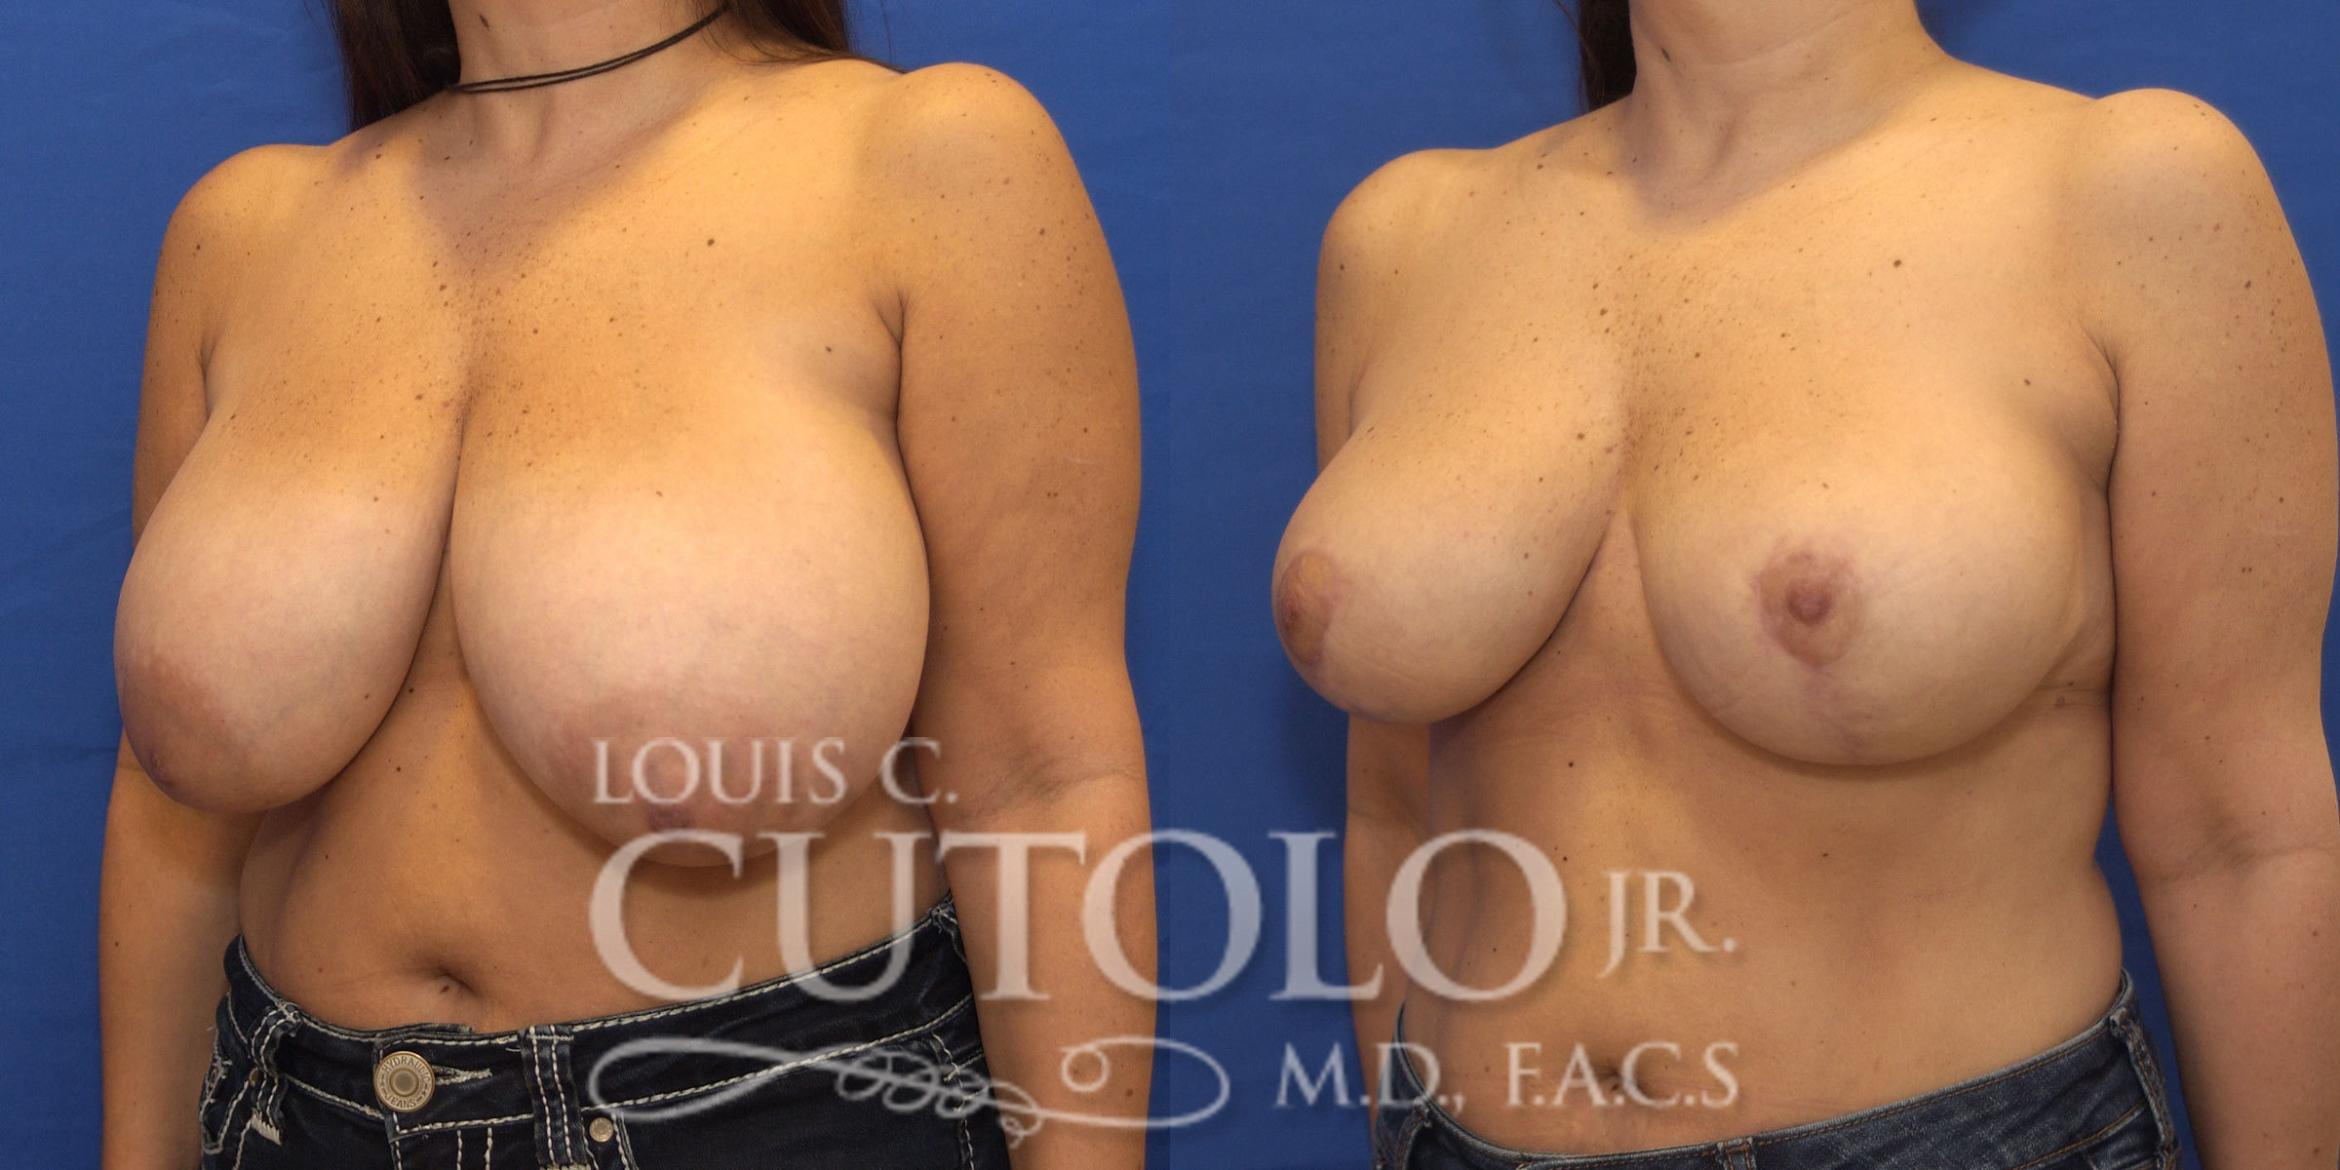 Breast Reduction Before & After Photo | Brooklyn, Staten Island, Queens, NY | Louis C. Cotolo, Jr., M.D., F.A.C.S.